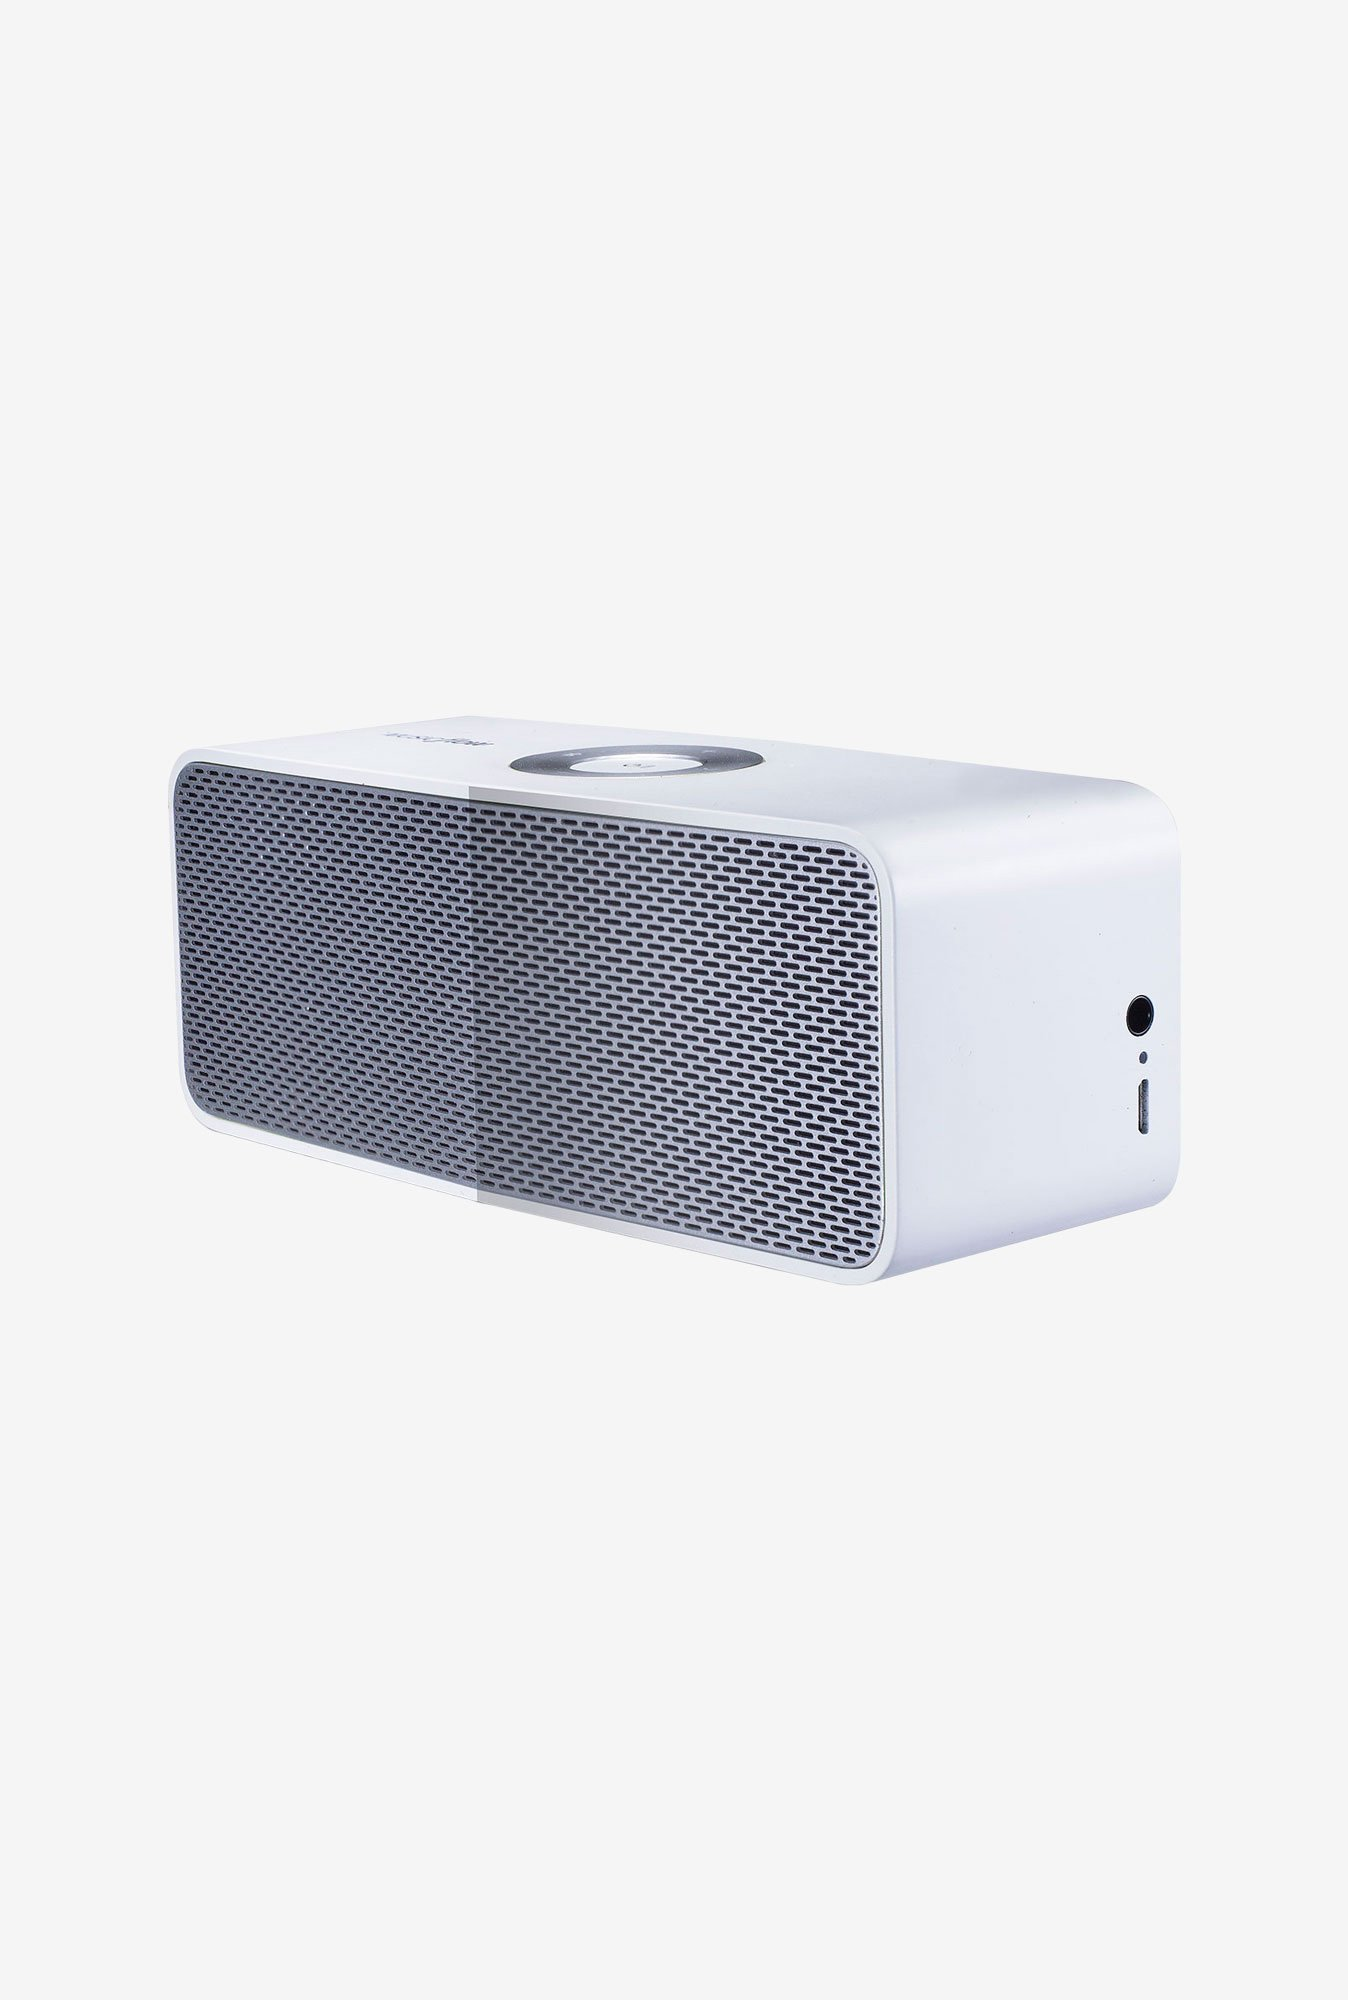 LG NP5550 Bluetooth Speaker White